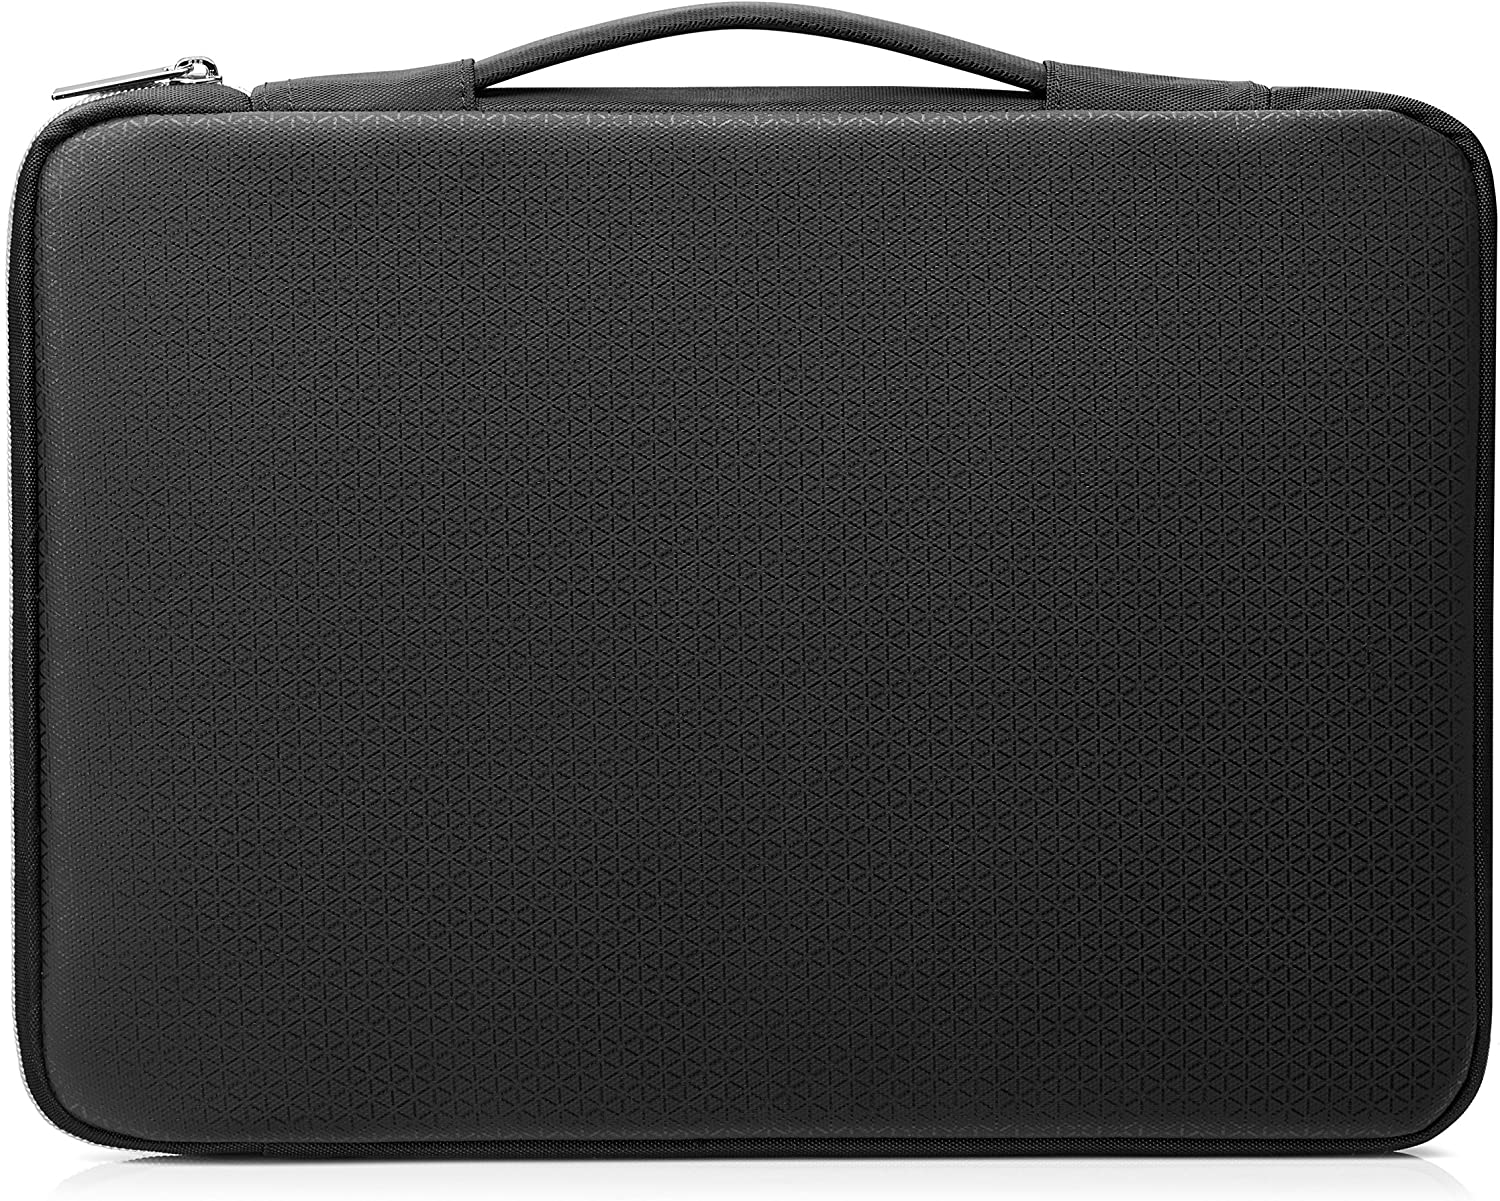 HP Duotone 14 Inch (35.5 cm) Black & Silver Carry Sleeve for Laptop/Chromebook/Mac